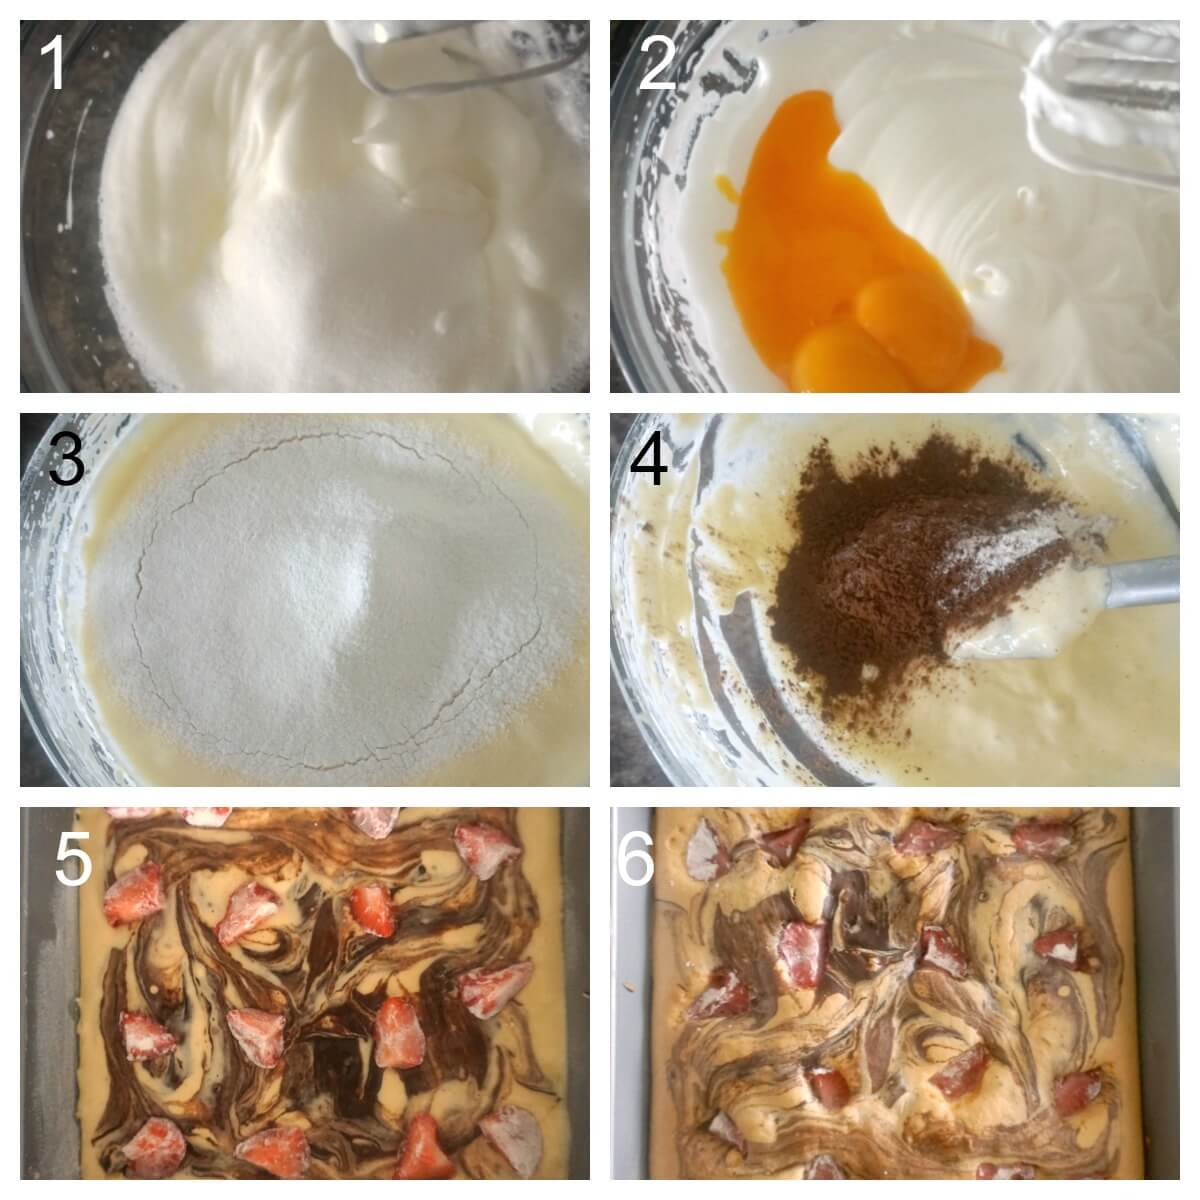 Collage of 6 photos to show how to make strawberry chocolate sponge cakes